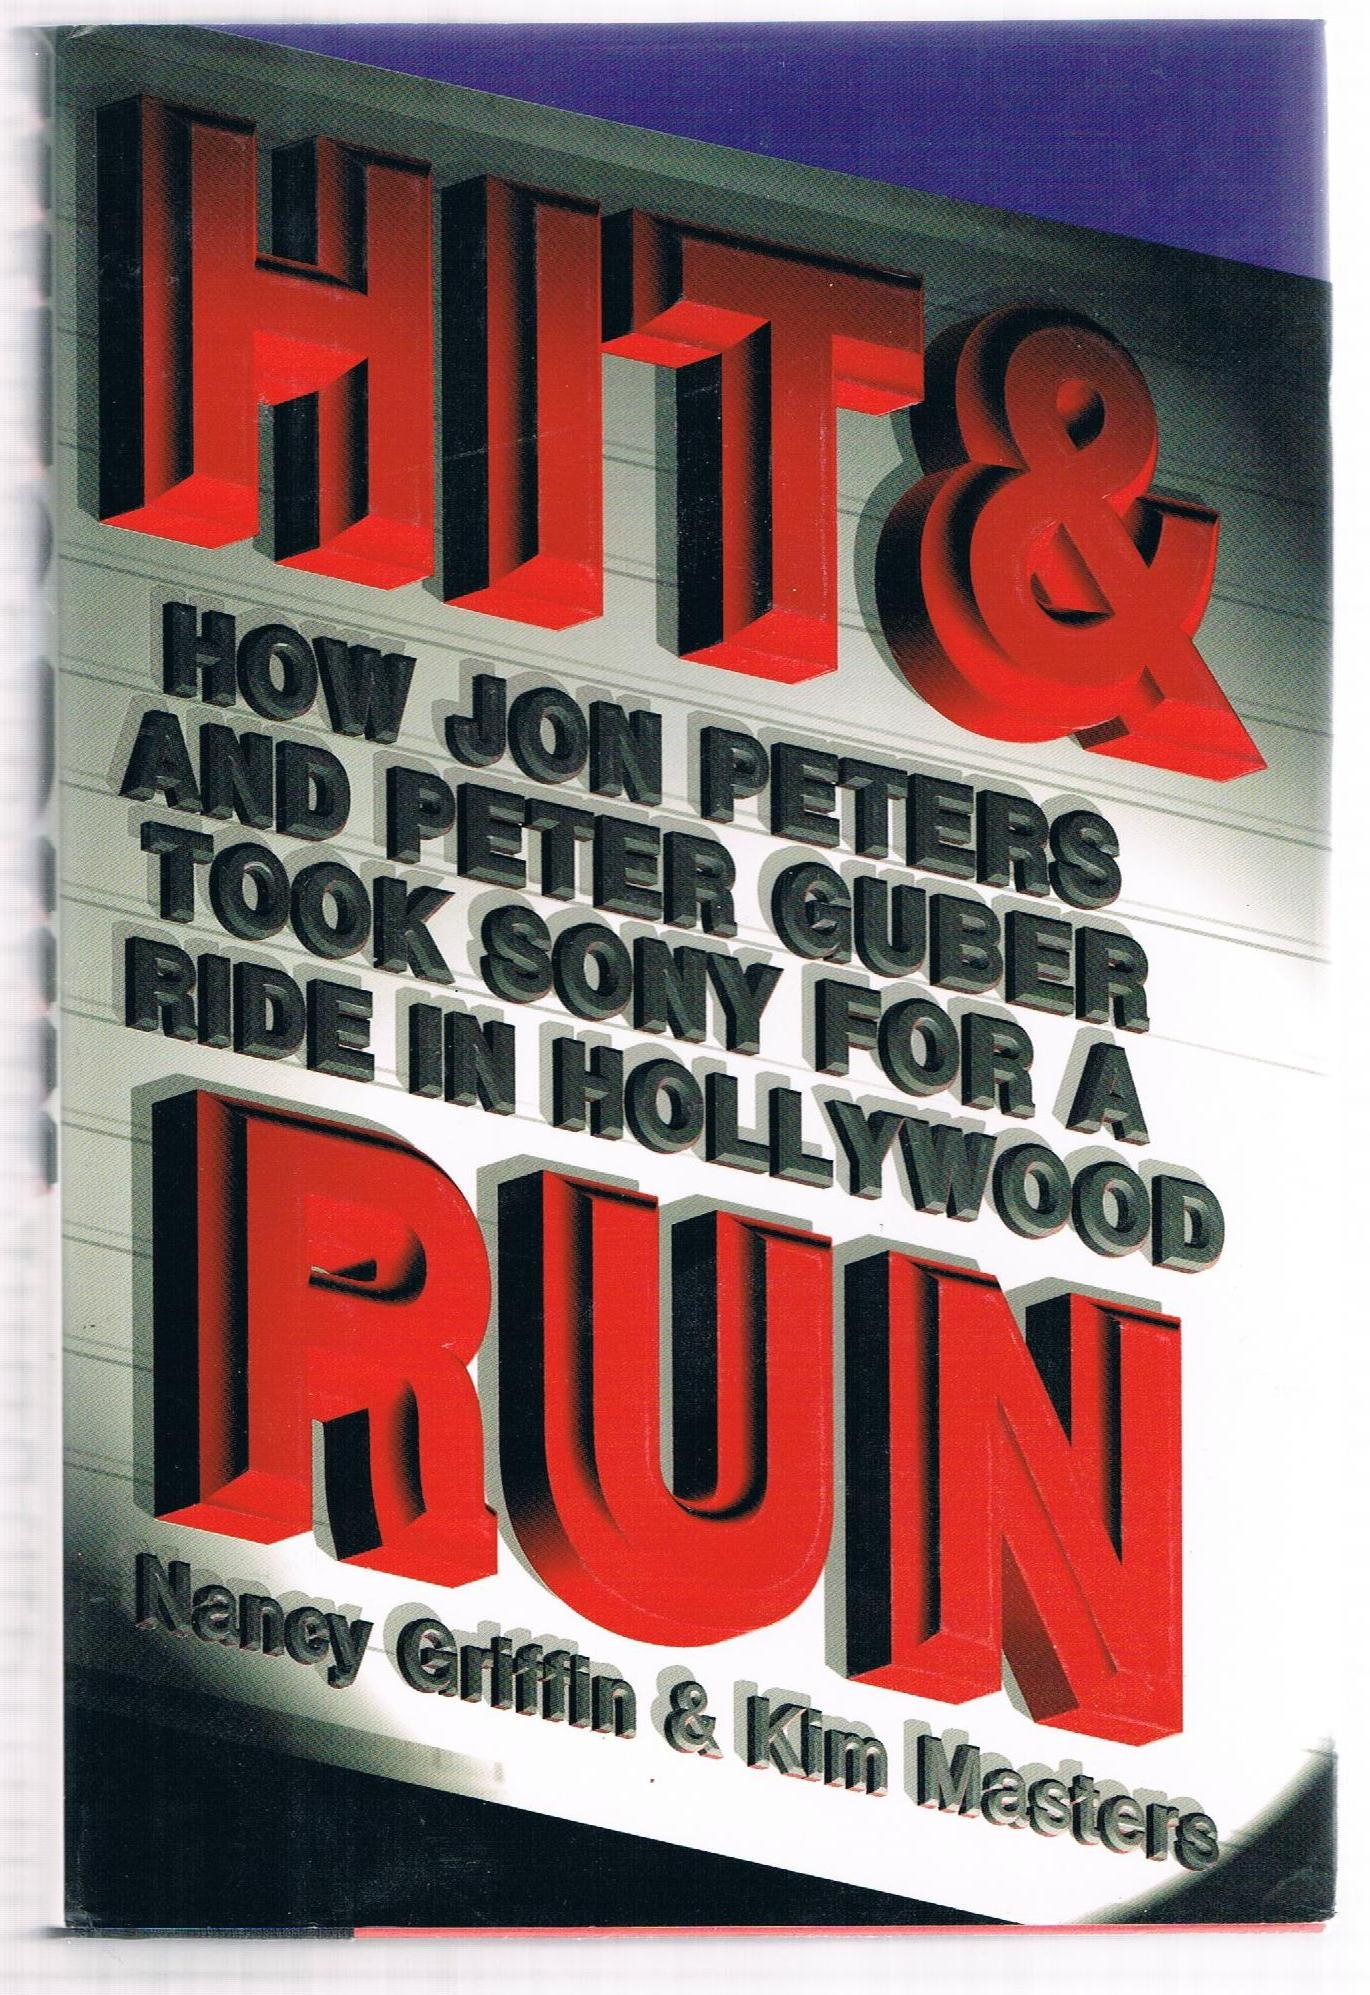 Hit and Run: How Jon Peters and Peter Guber took Sony for a ride in  Hollywood: Griffin, Nancy, Masters, Kim: 9780684809311: Amazon.com: Books